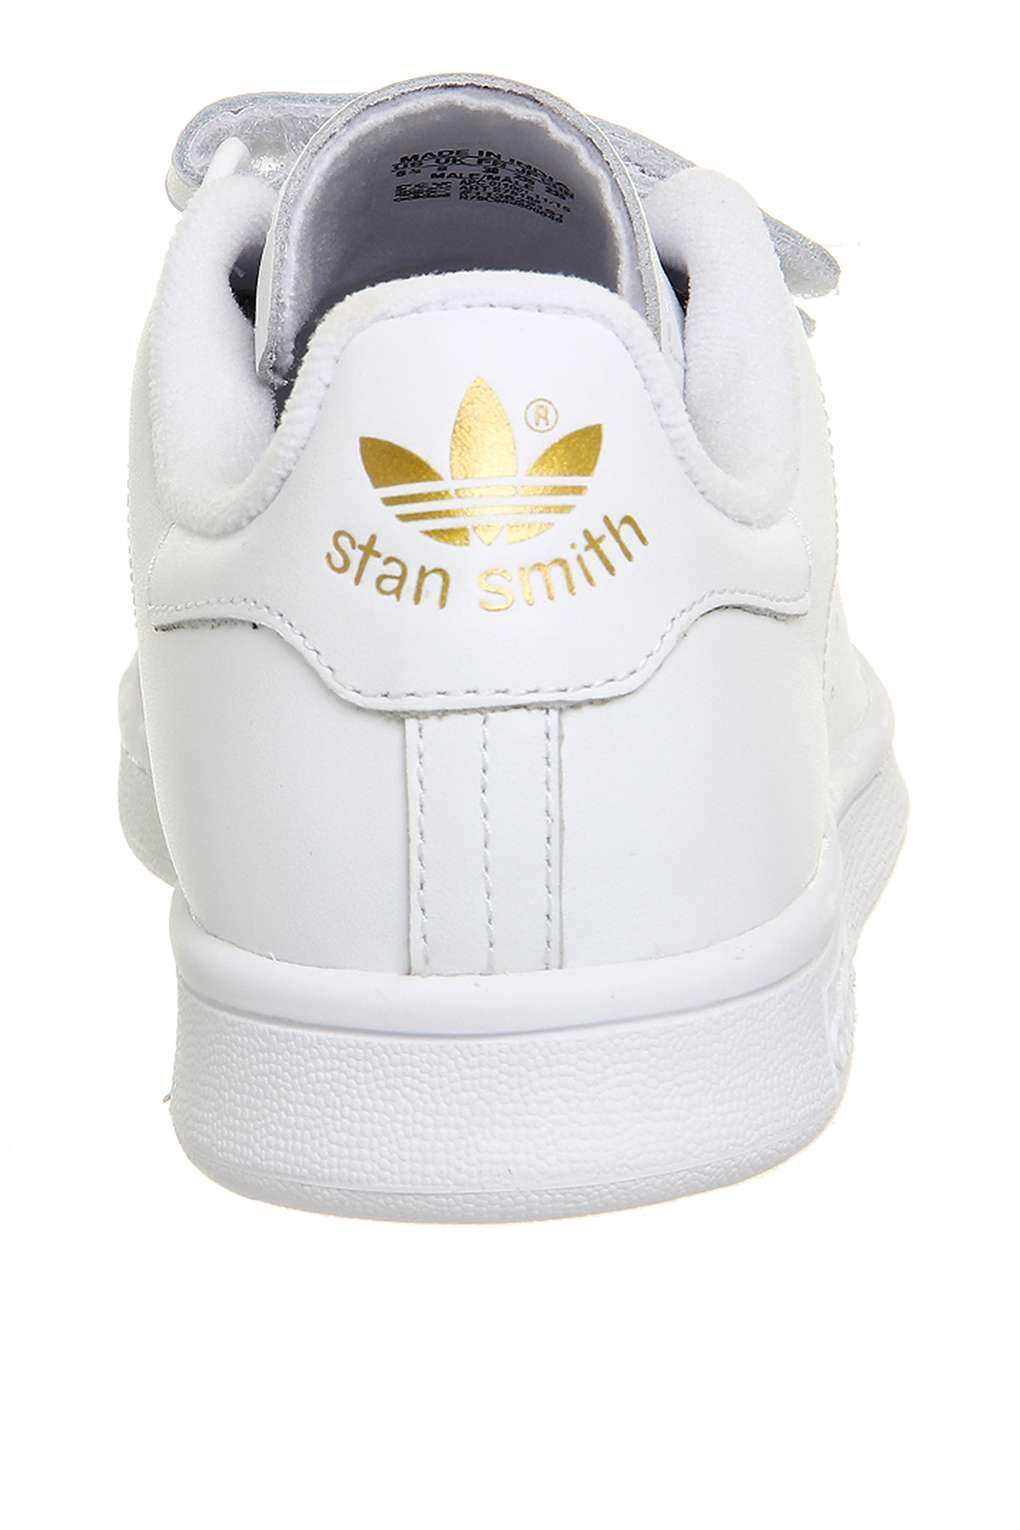 5eff6f822fa Office Adidas Stan Smith Cf Trainers in White - Lyst